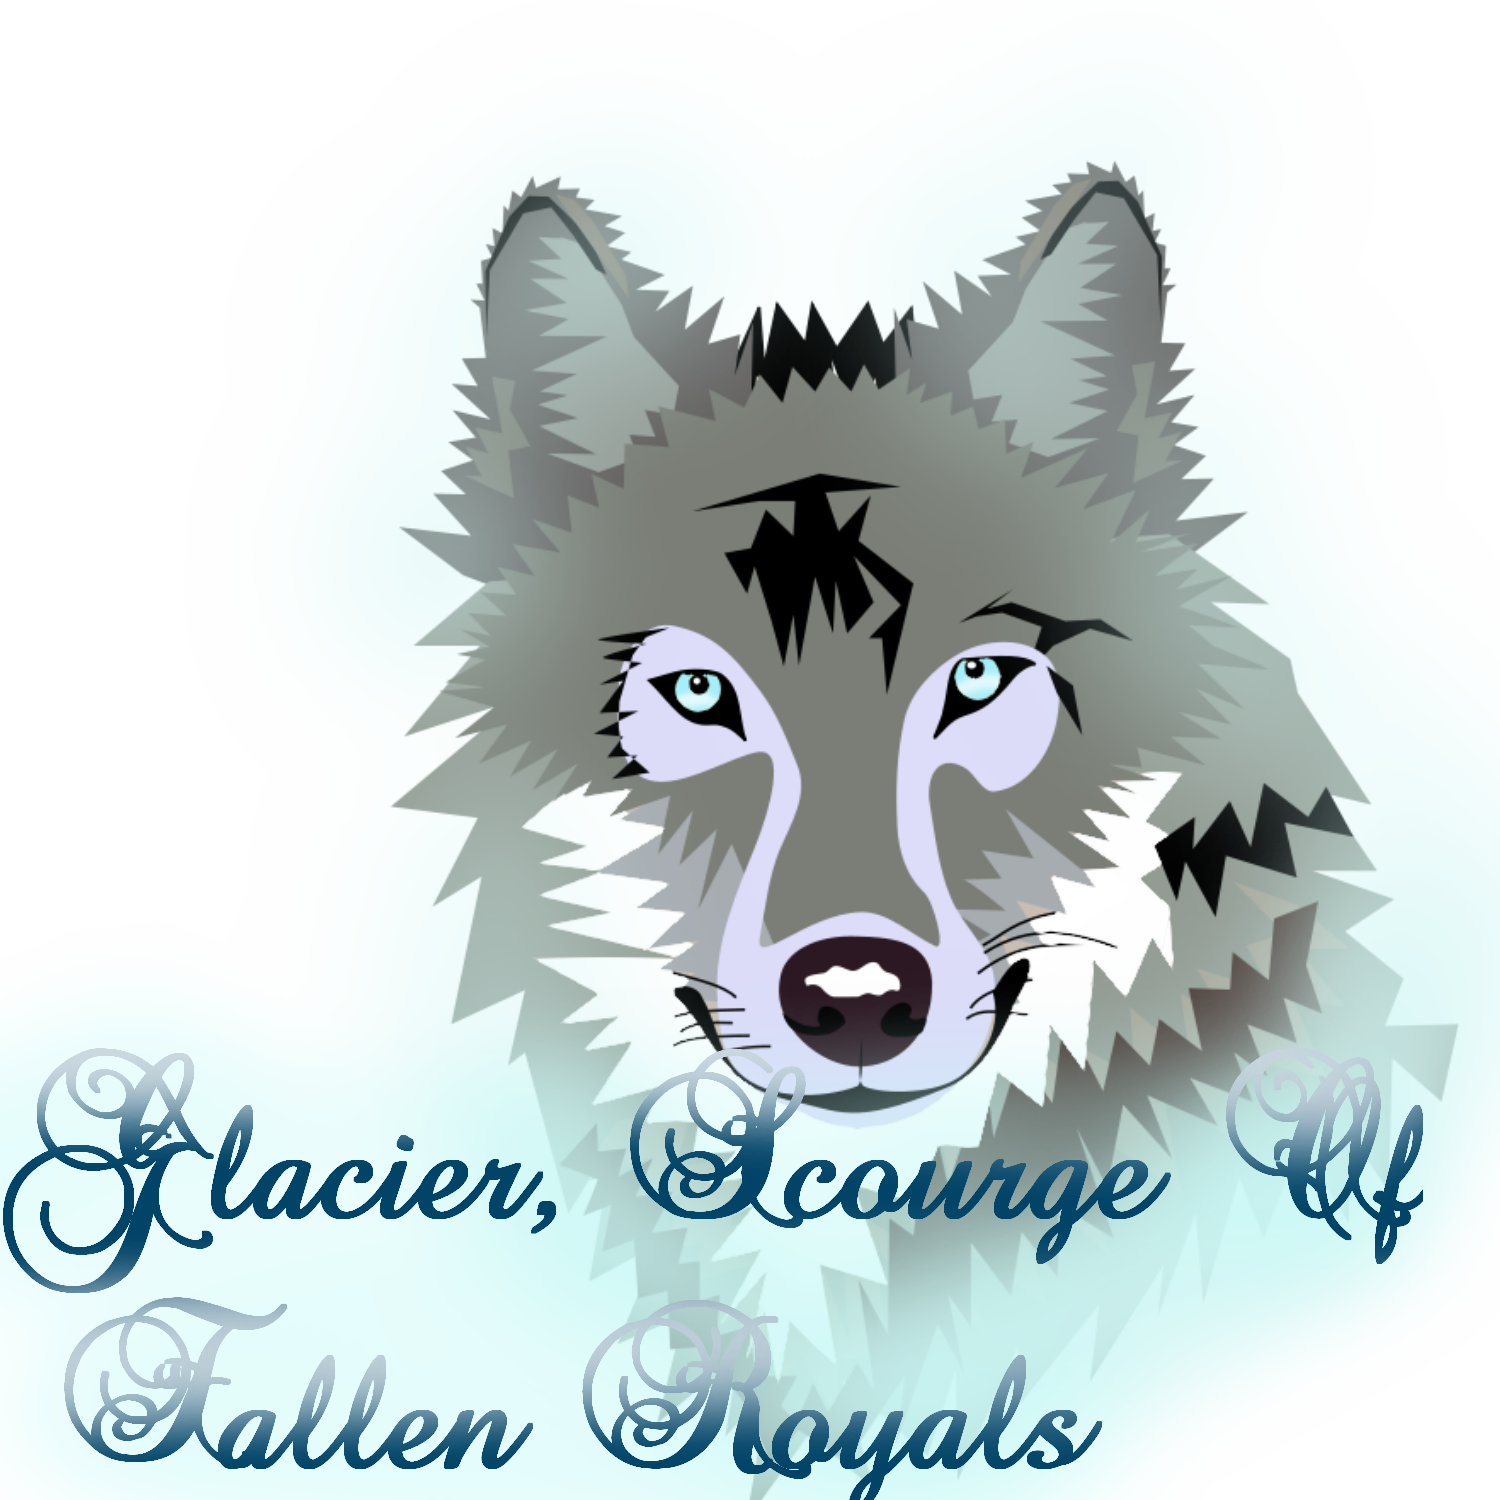 Image free images png. Husky clipart wolf